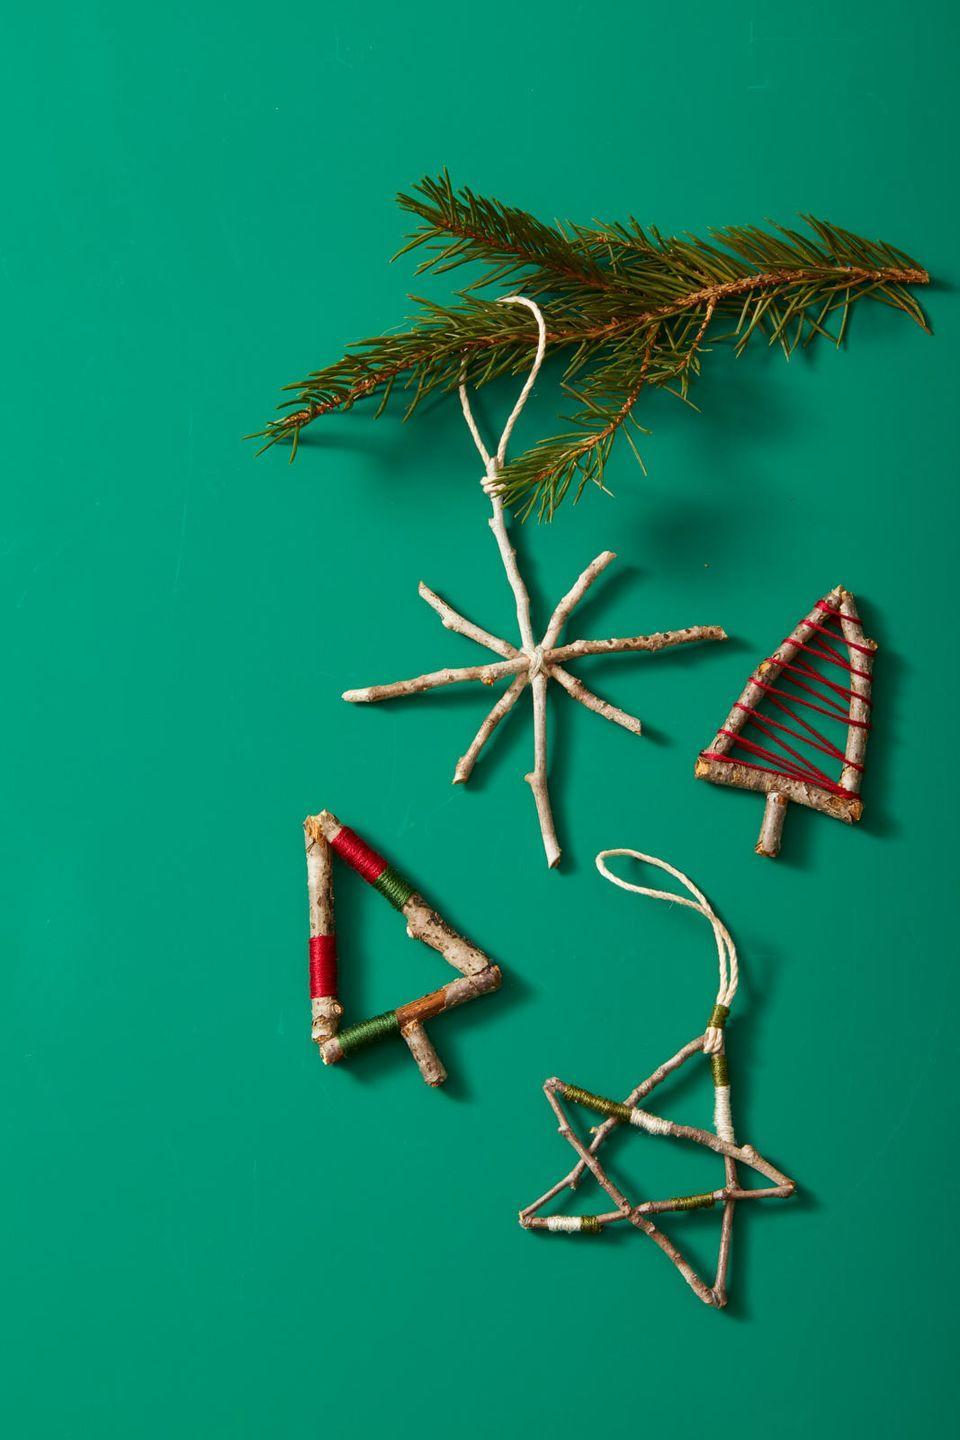 <p>Here's a fun one to do with kids: Use twigs, glue, and embroidery thread to DIY ornaments inspired by nature. </p>